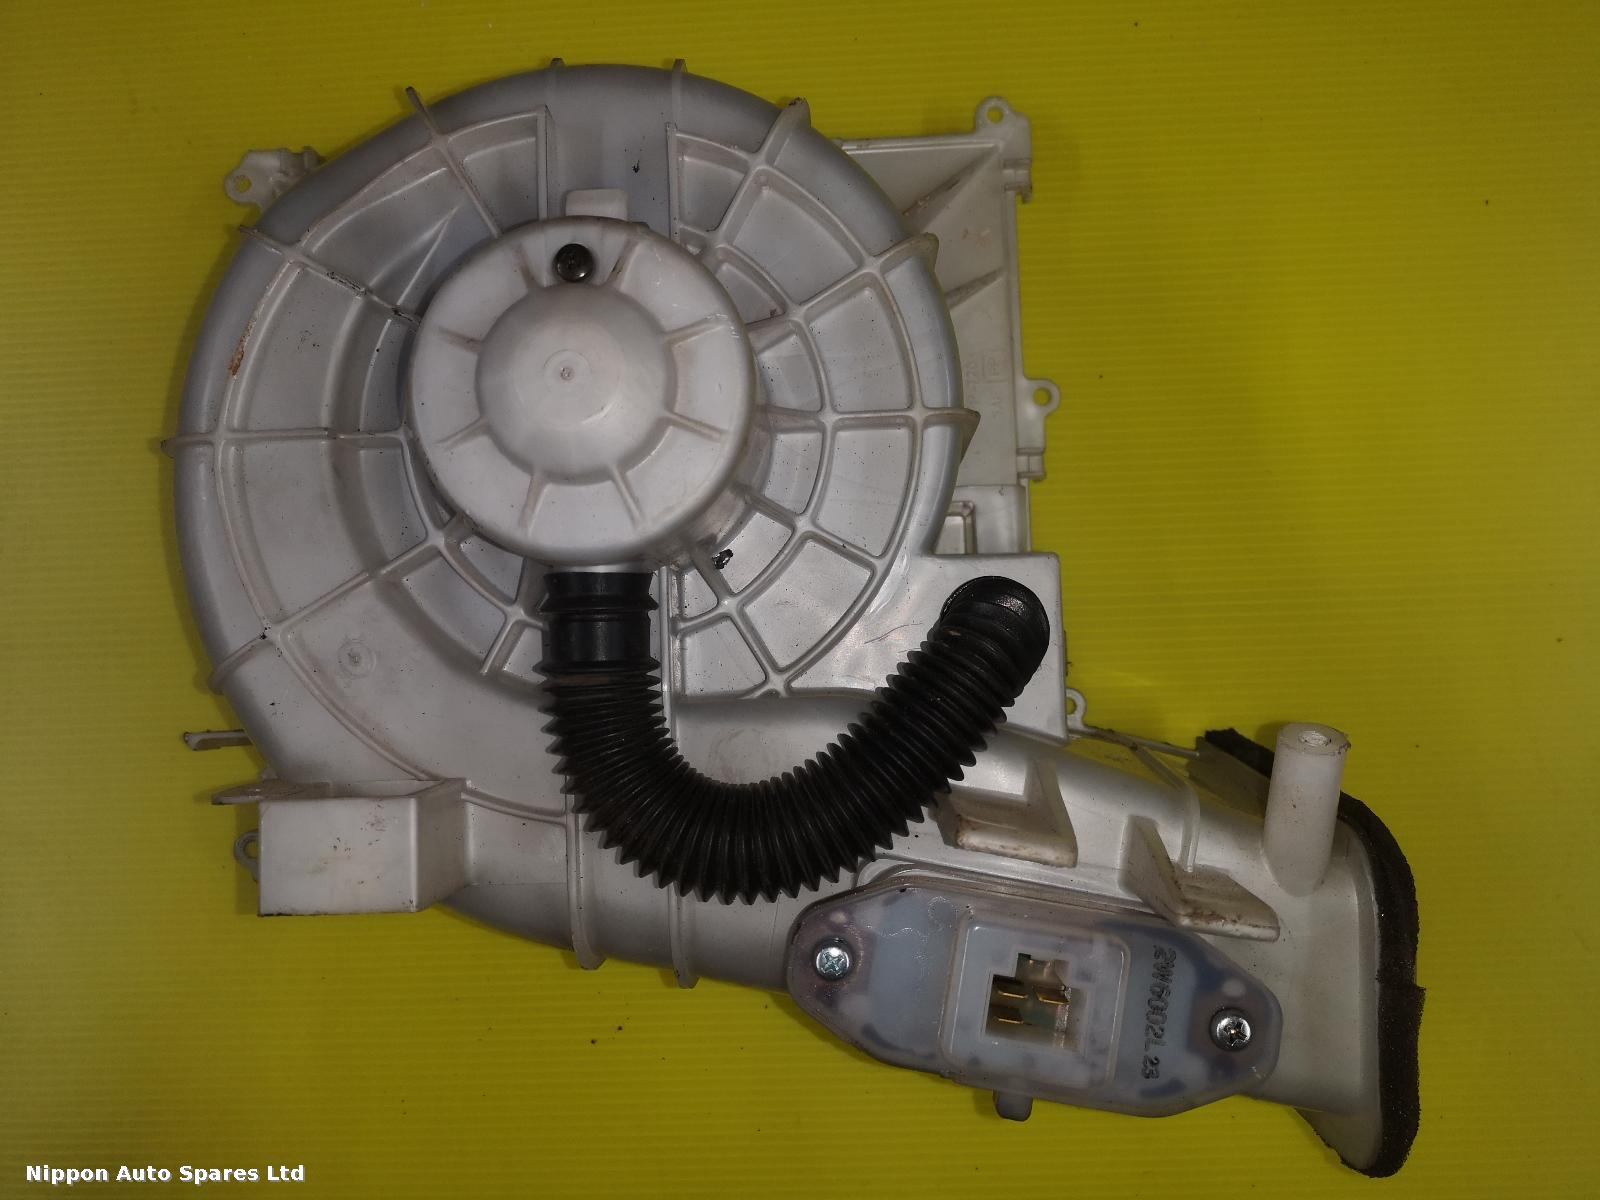 Nissan X TRAIL Heater Motor/Assembly LARGE HEATER RESISTER 2005+: 53638